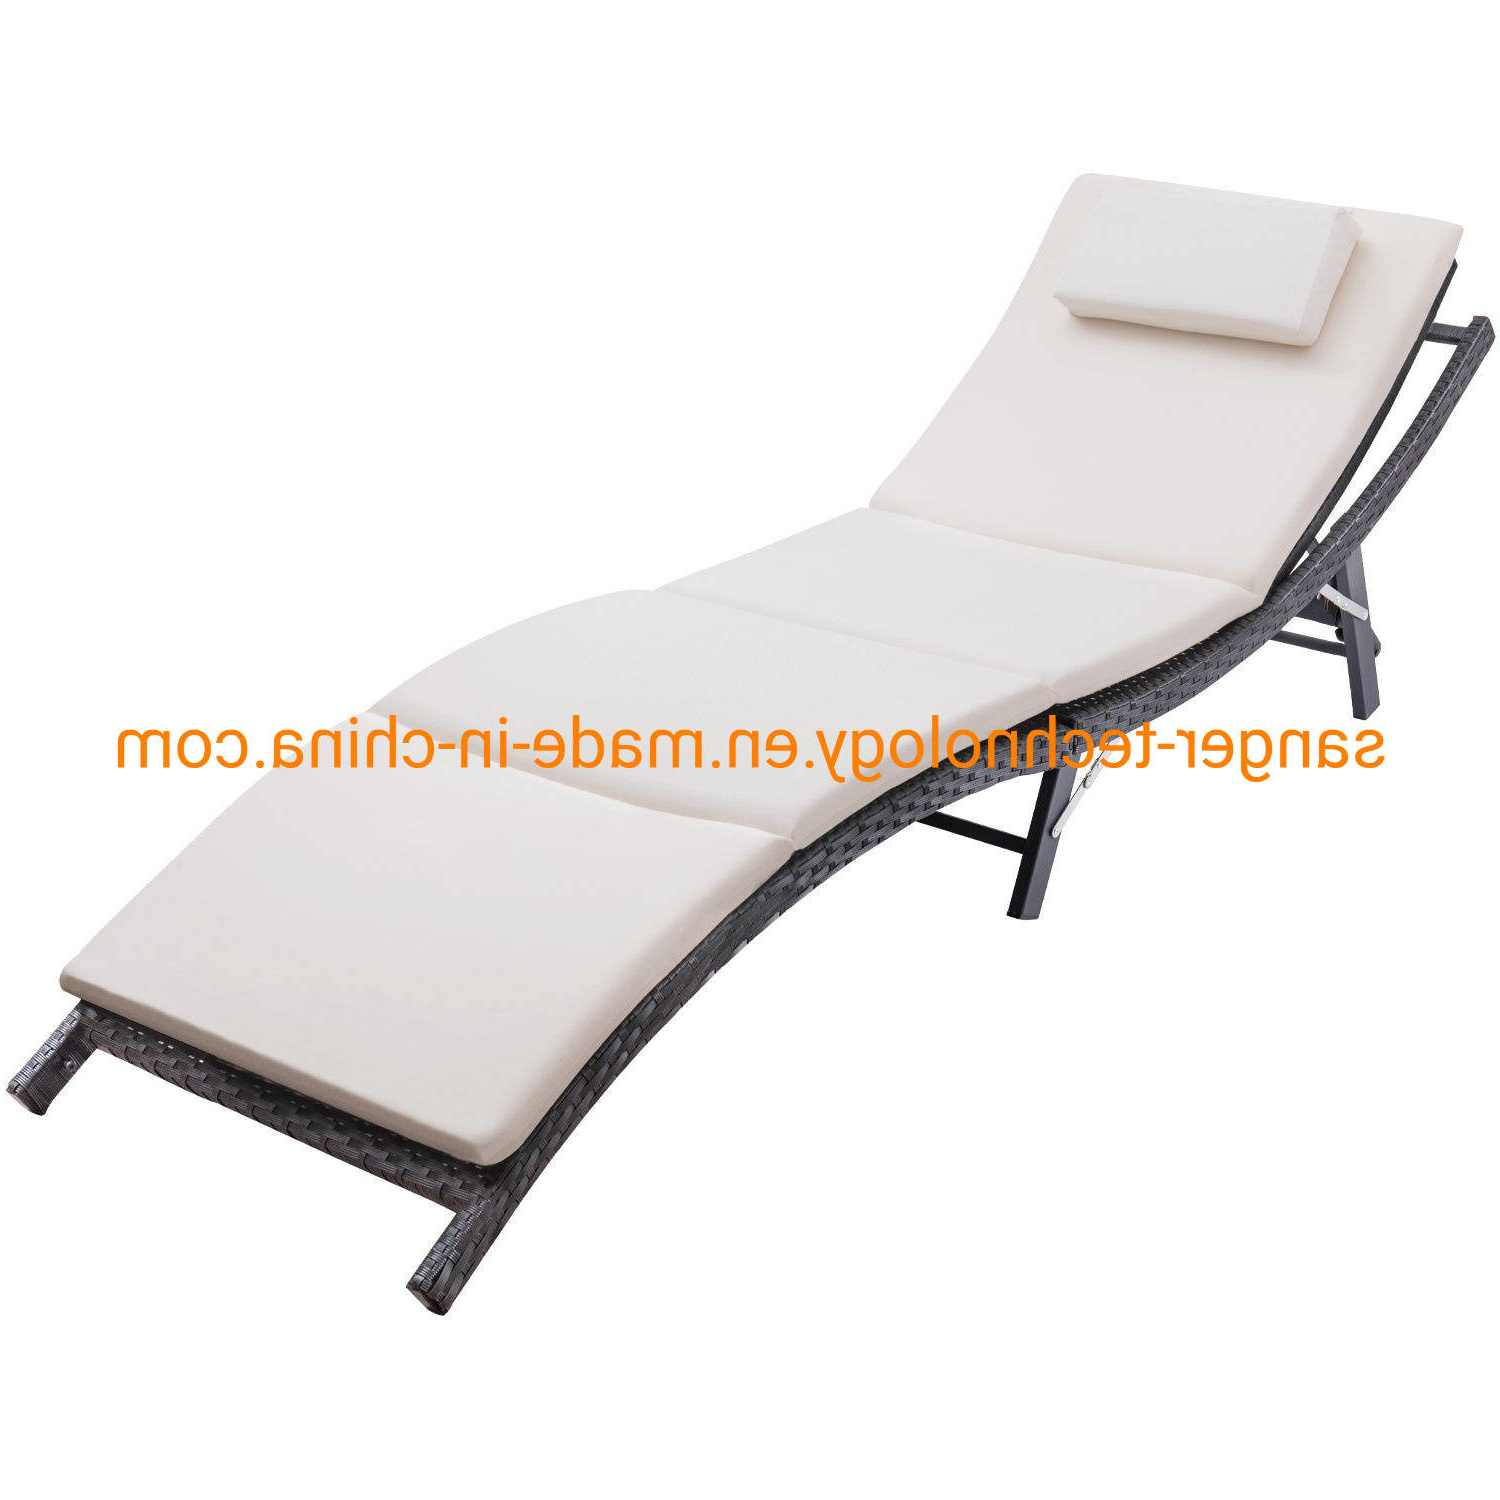 Stunning Patio Outdoor Chaise Lounge Cushions Cushion Modern Within Well Known Outdoor Wicker Adjustable Chaise Lounges With Cushions (View 22 of 25)